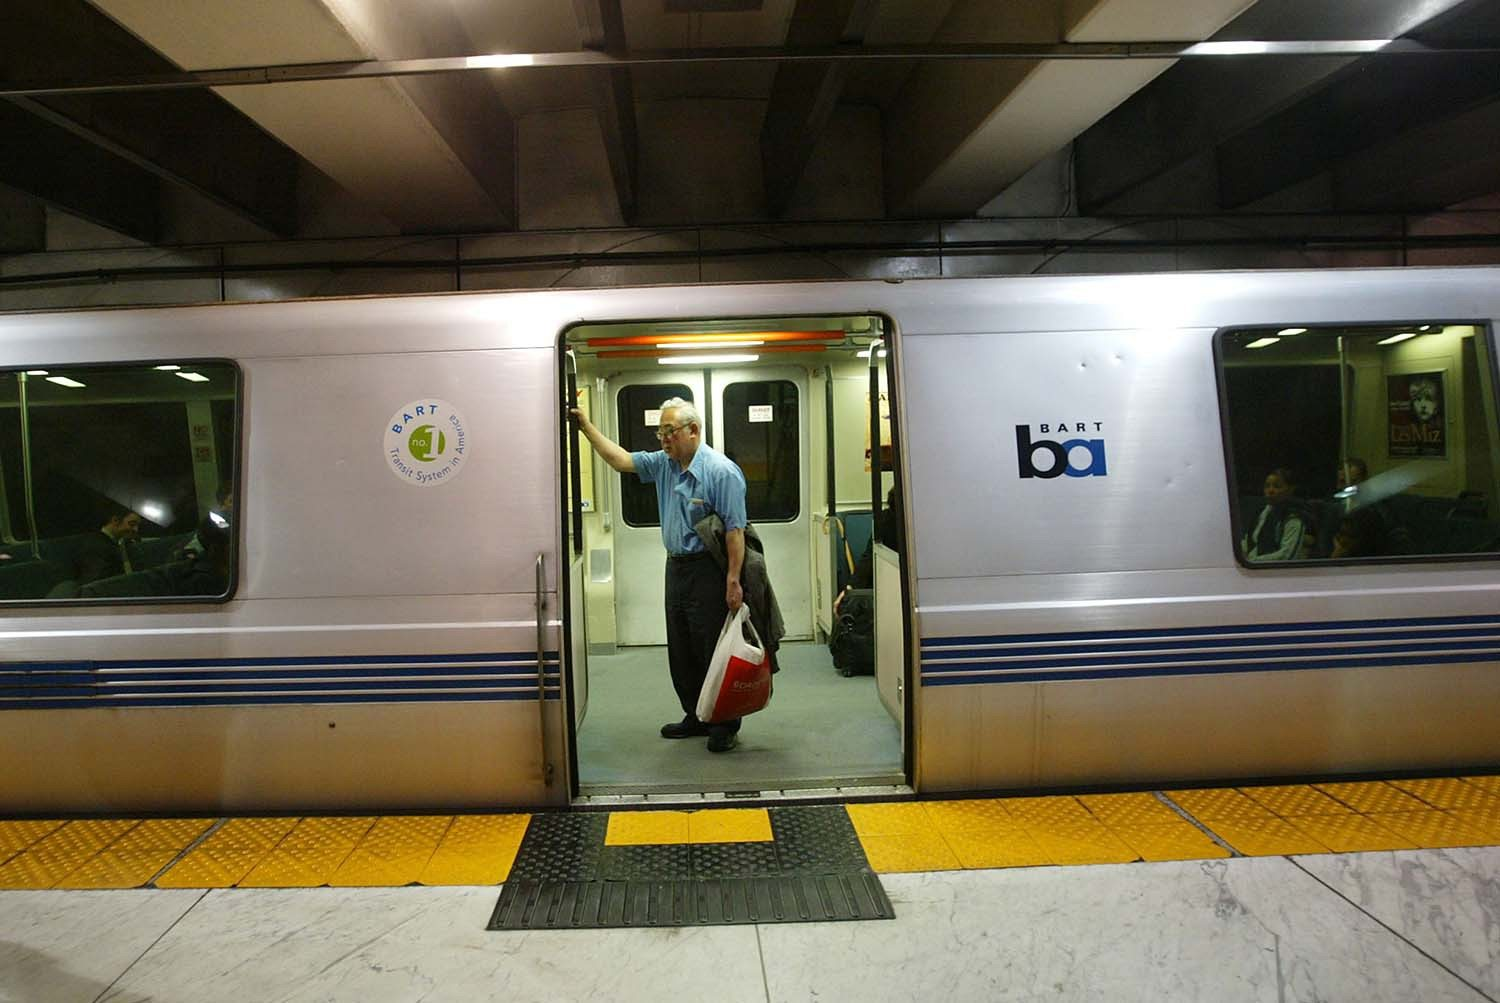 Cindy Chew/2005 AP File PhotoStarting Jan. 1 BART fares will increase by either 10 or 15 cents depending on the distance of a trip.